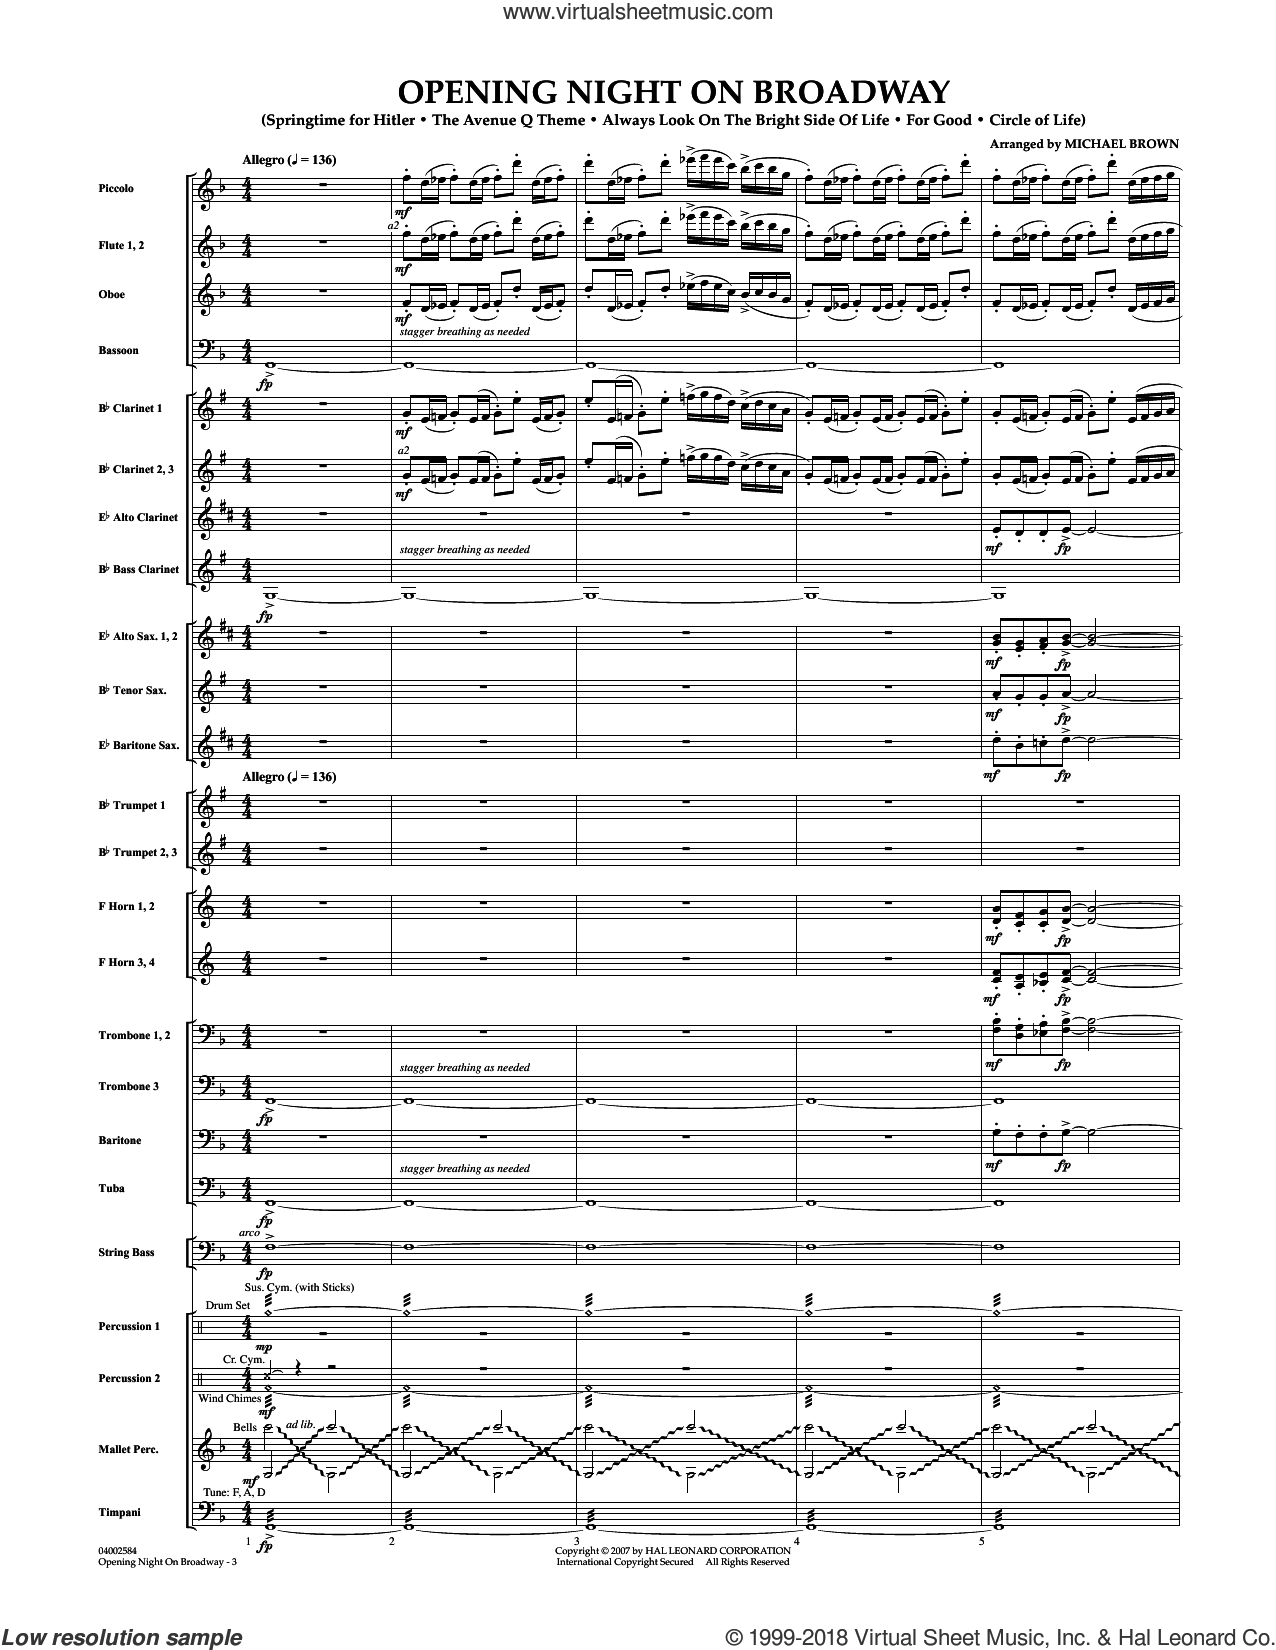 Opening Night on Broadway (COMPLETE) sheet music for concert band by Michael Brown, intermediate skill level